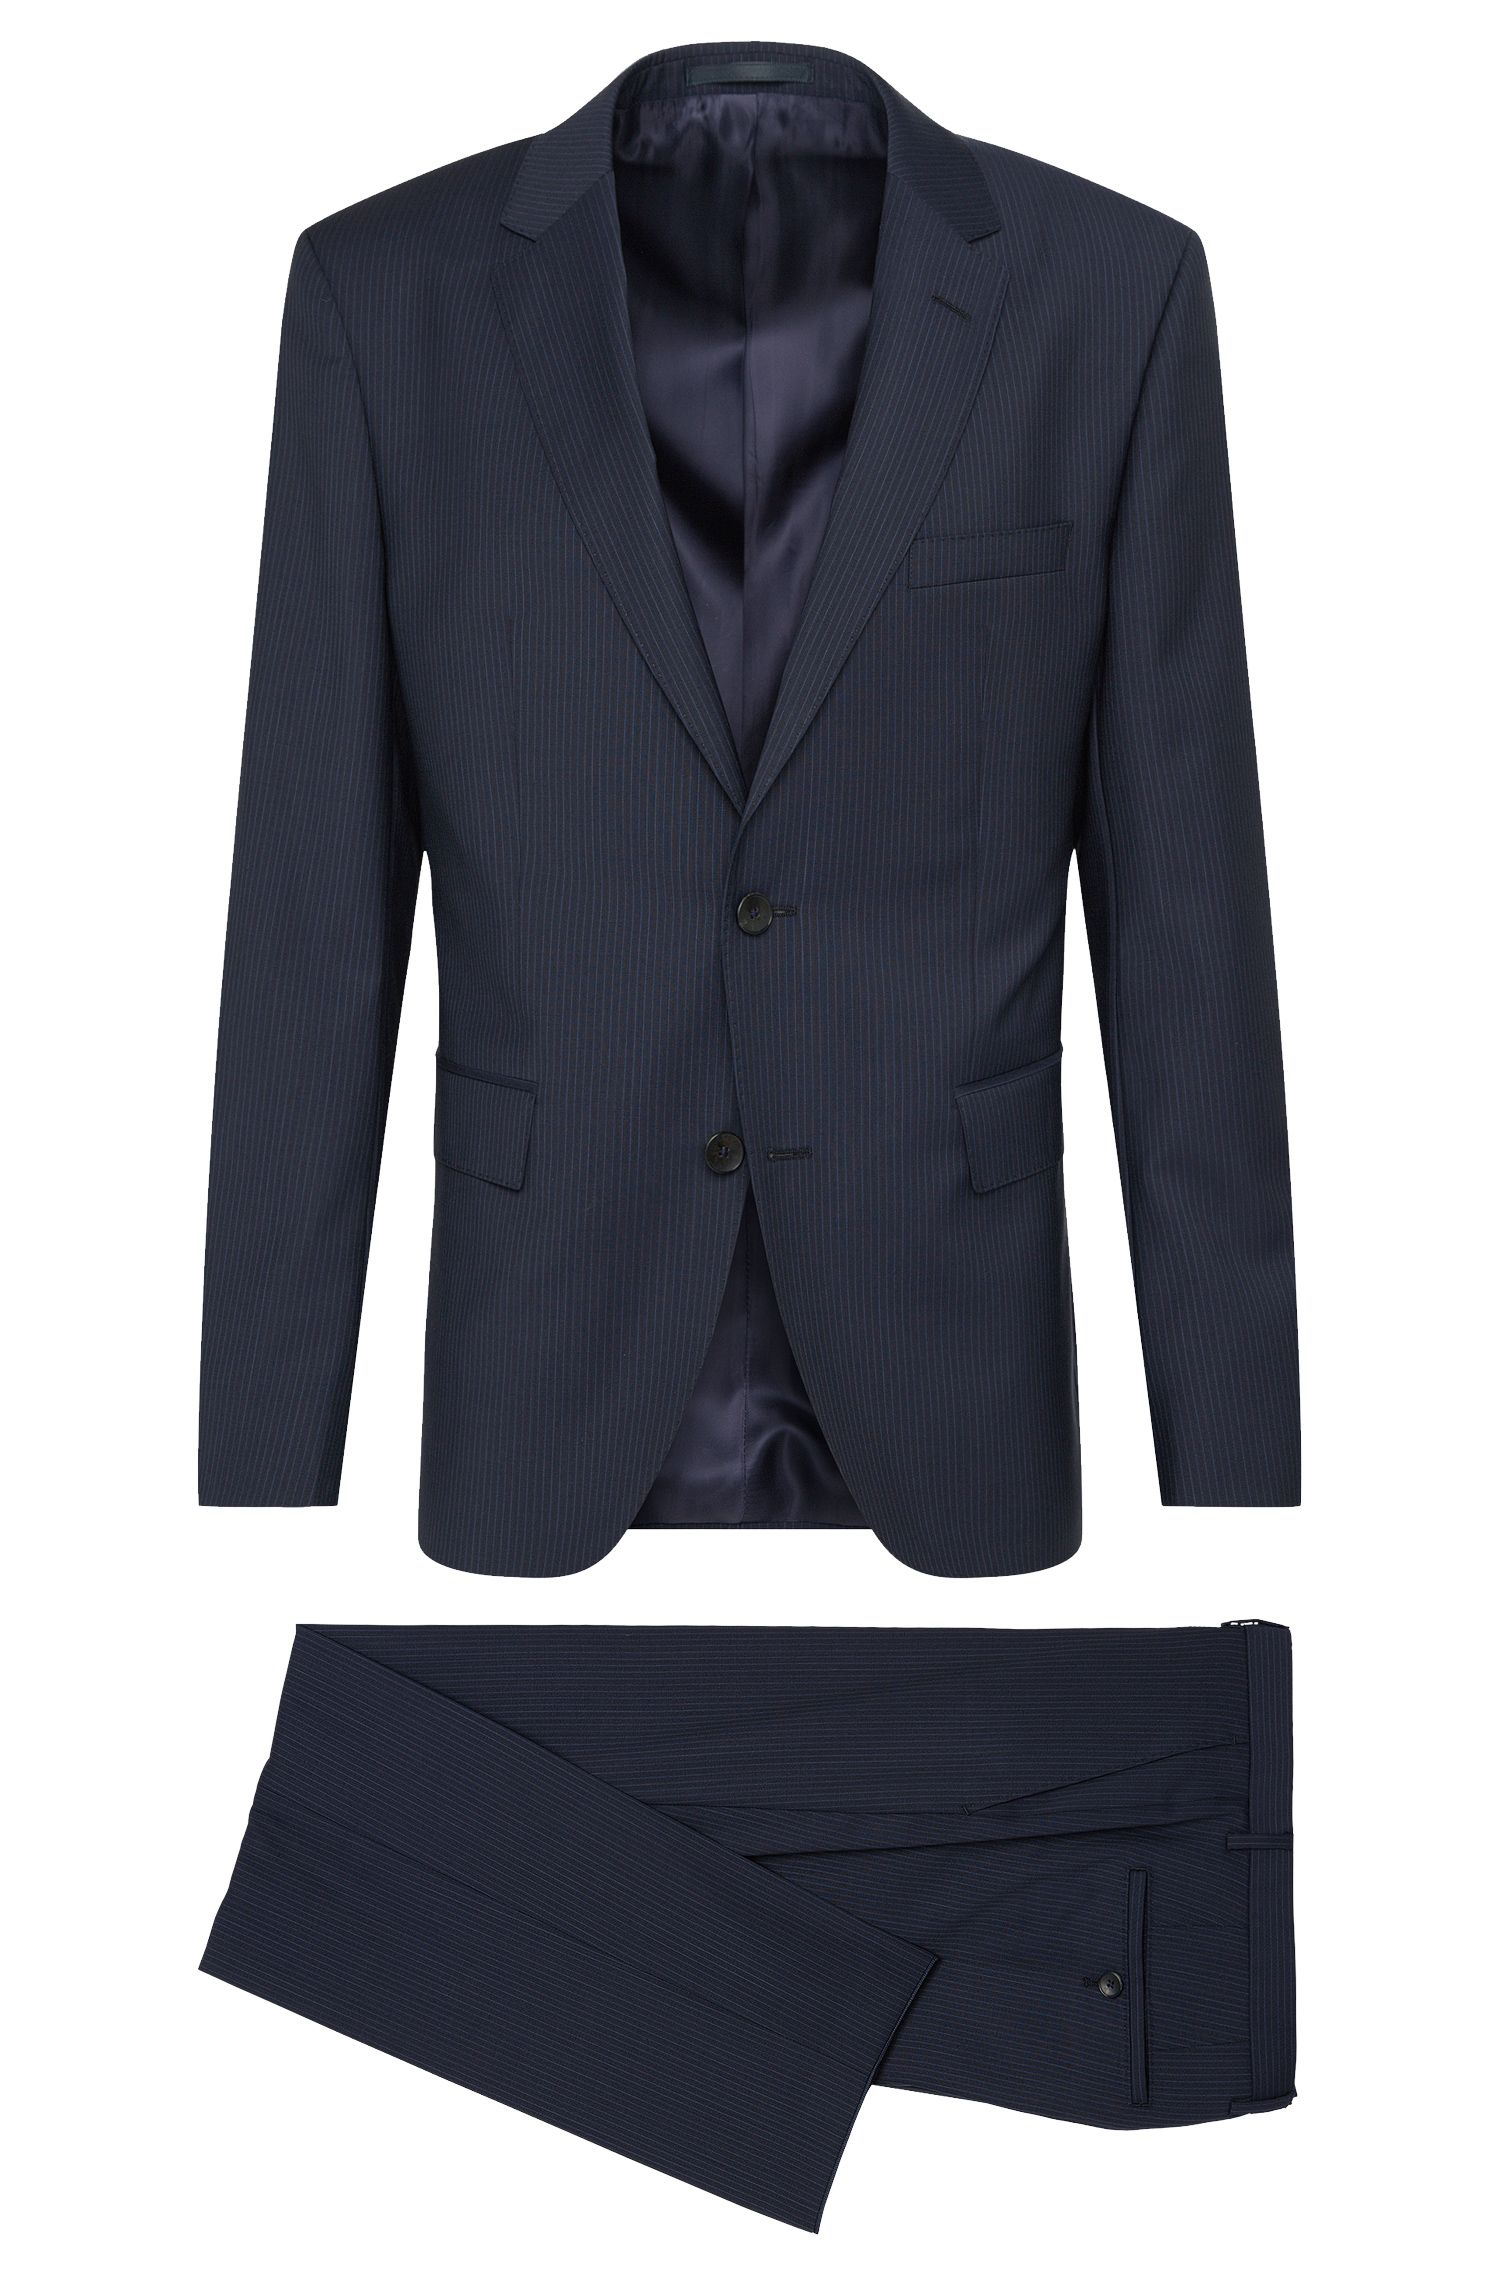 'Johnstons/Lenon' | Regular Fit, Super 100 Italian Virgin Wool Suit